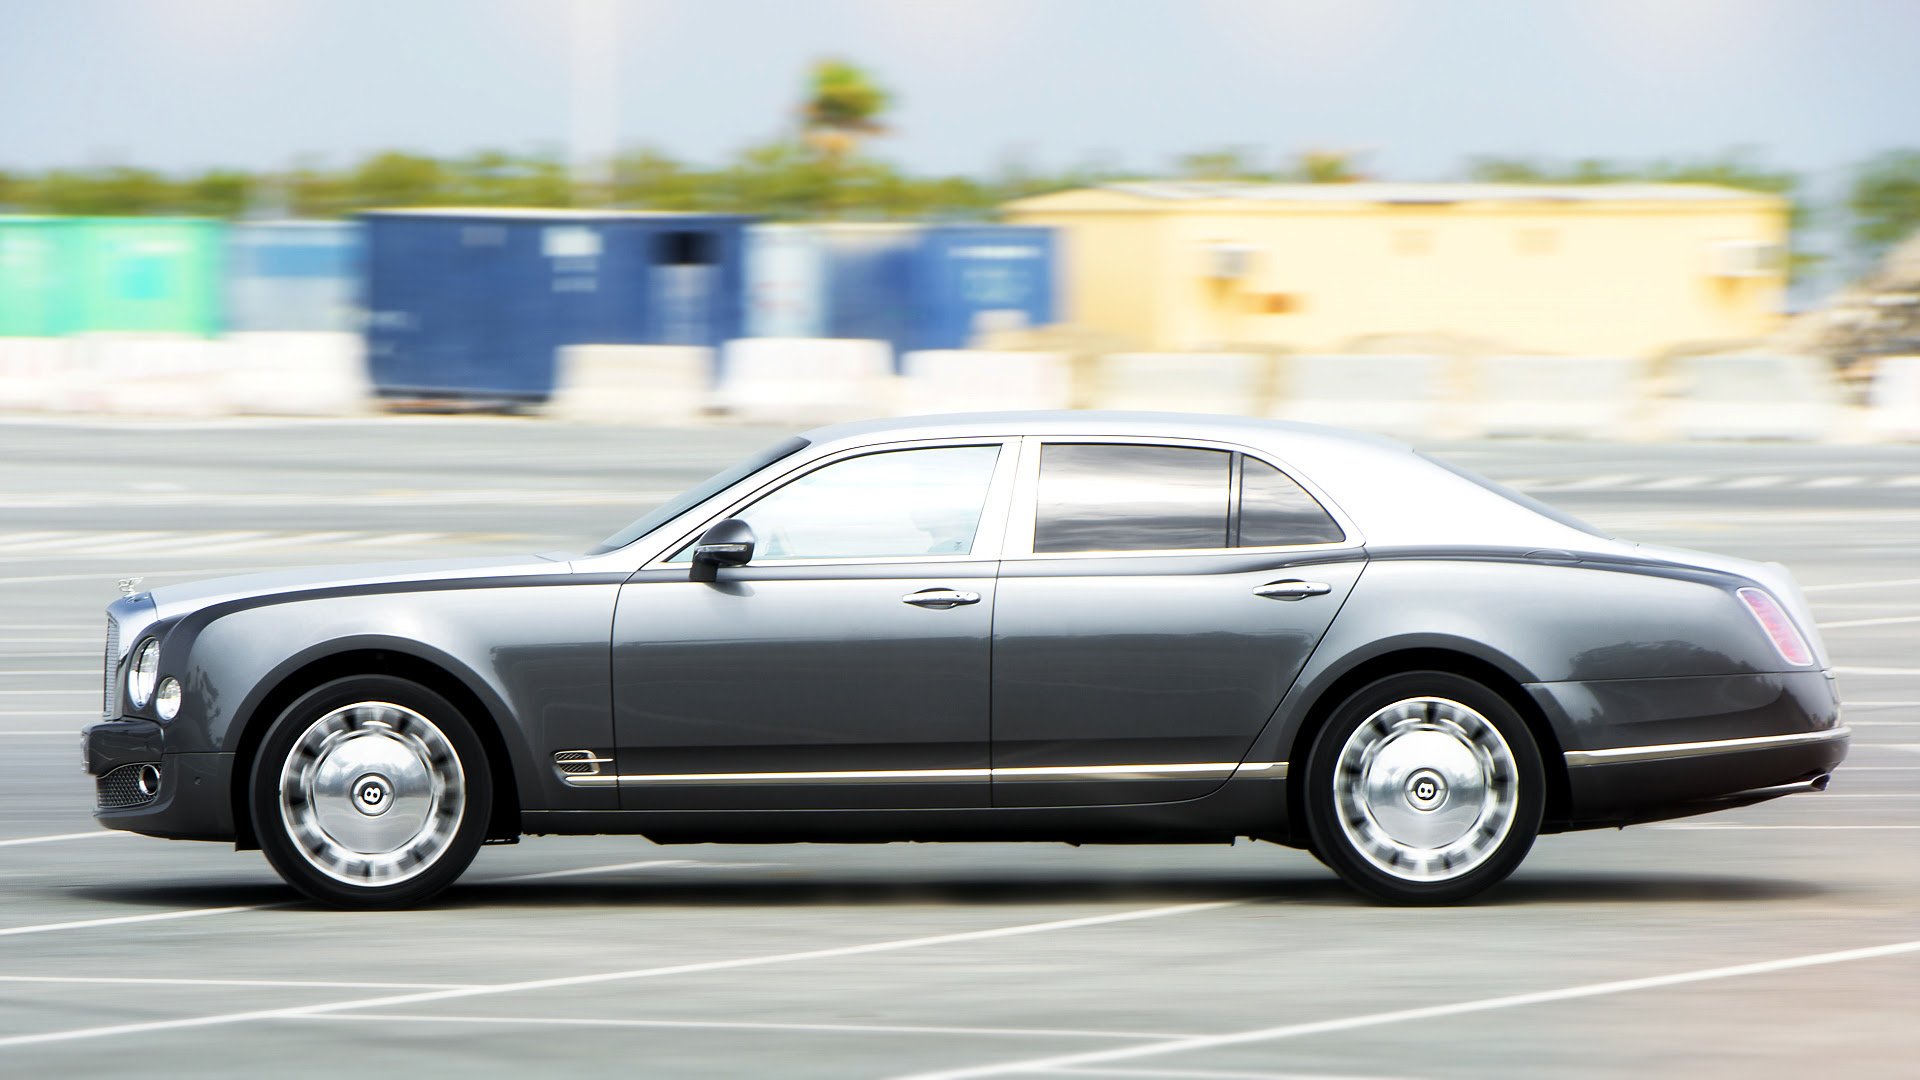 2017 Bentley Continental Flying Spur Quality Review   2016  2017 Best